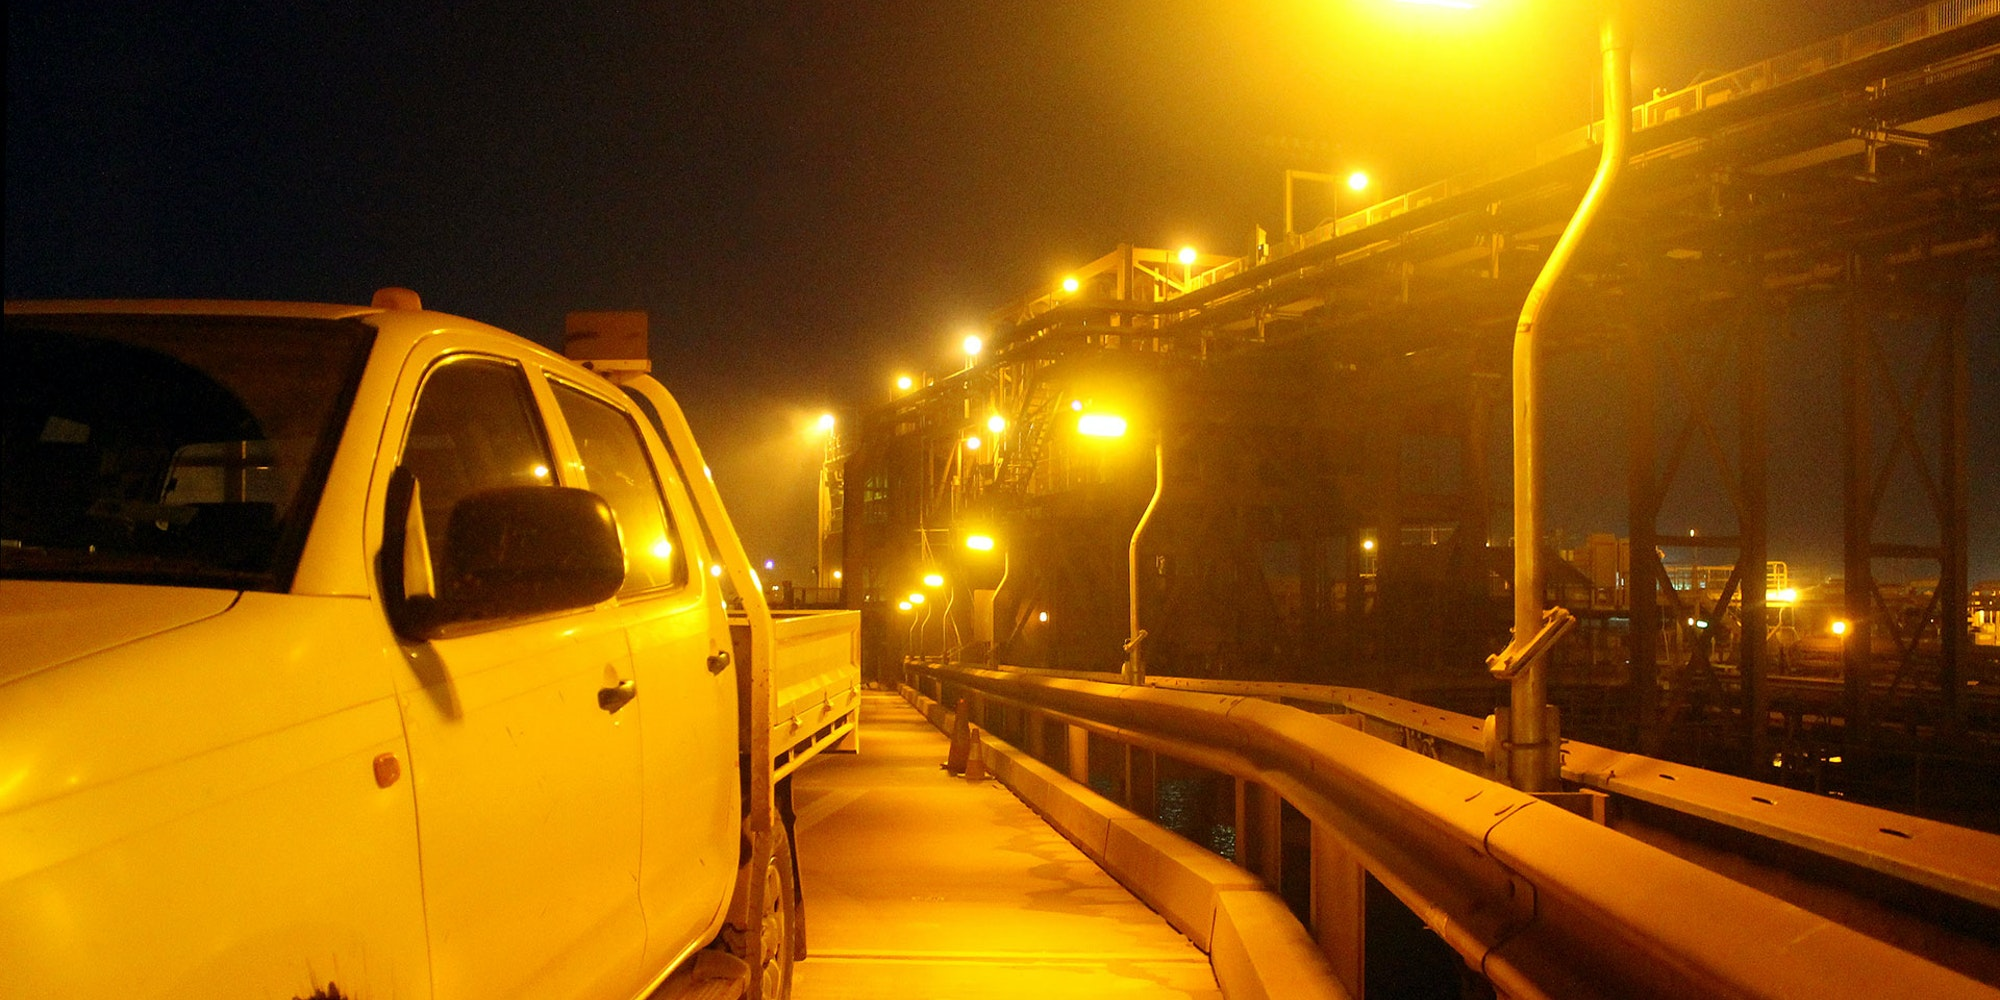 DLK2 LED Conveyor / Area Light in turtle-friendly amber colour temperature in application, installed in a bulk port in a fog